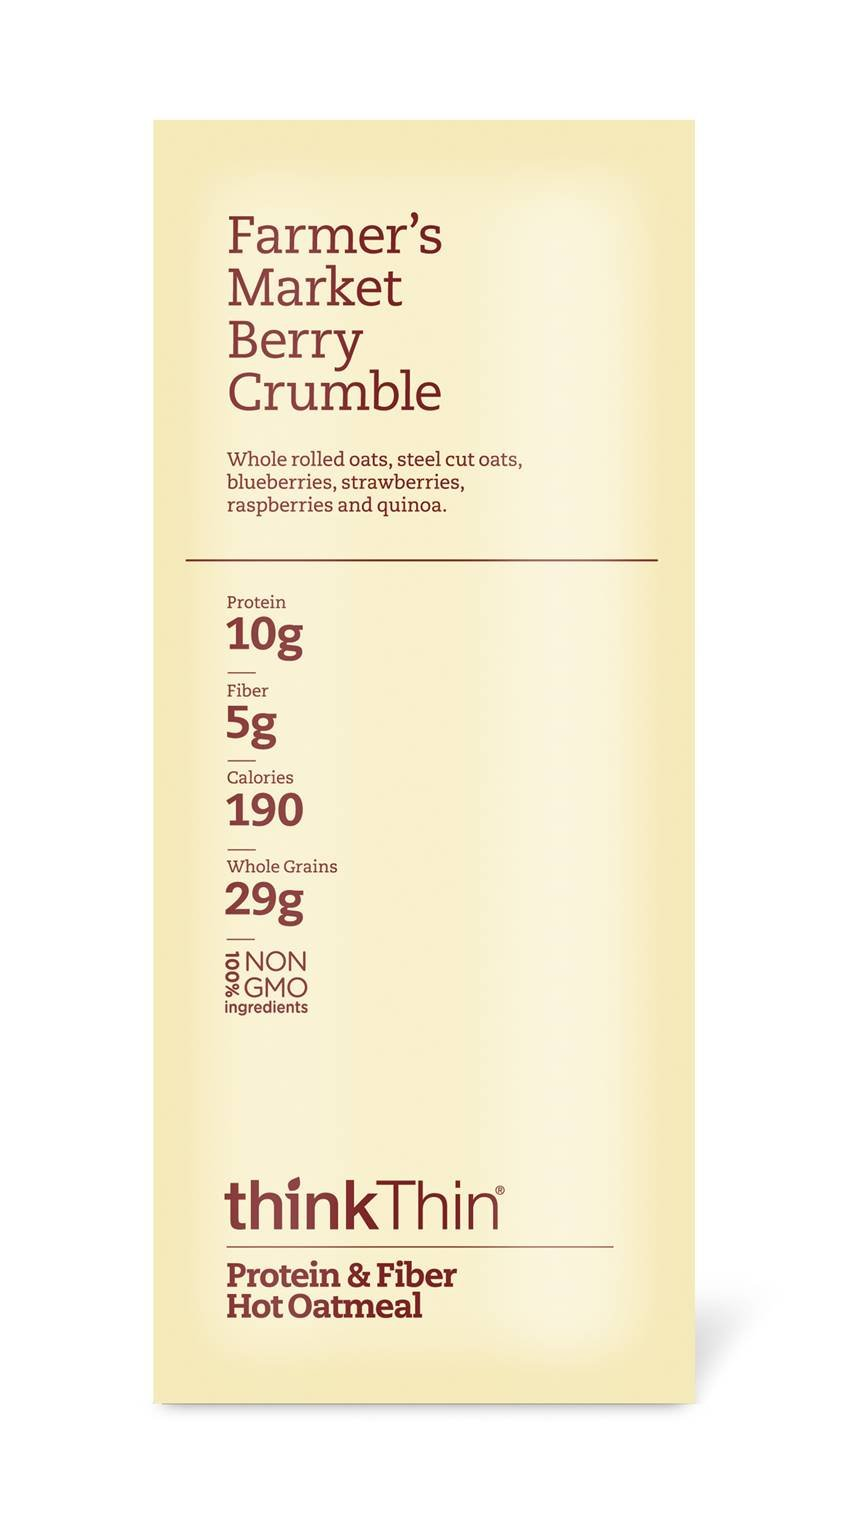 Oatmeal Packets by thinkThin, Instant Protein & Fiber Hot Oatmeal for On The Go- 10g Protein, 5g Fiber, Kosher - Farmer's Market Berry Crumble, 1.76 oz Packets (12 Boxes/6 Packets Per Box) by thinkThin (Image #2)